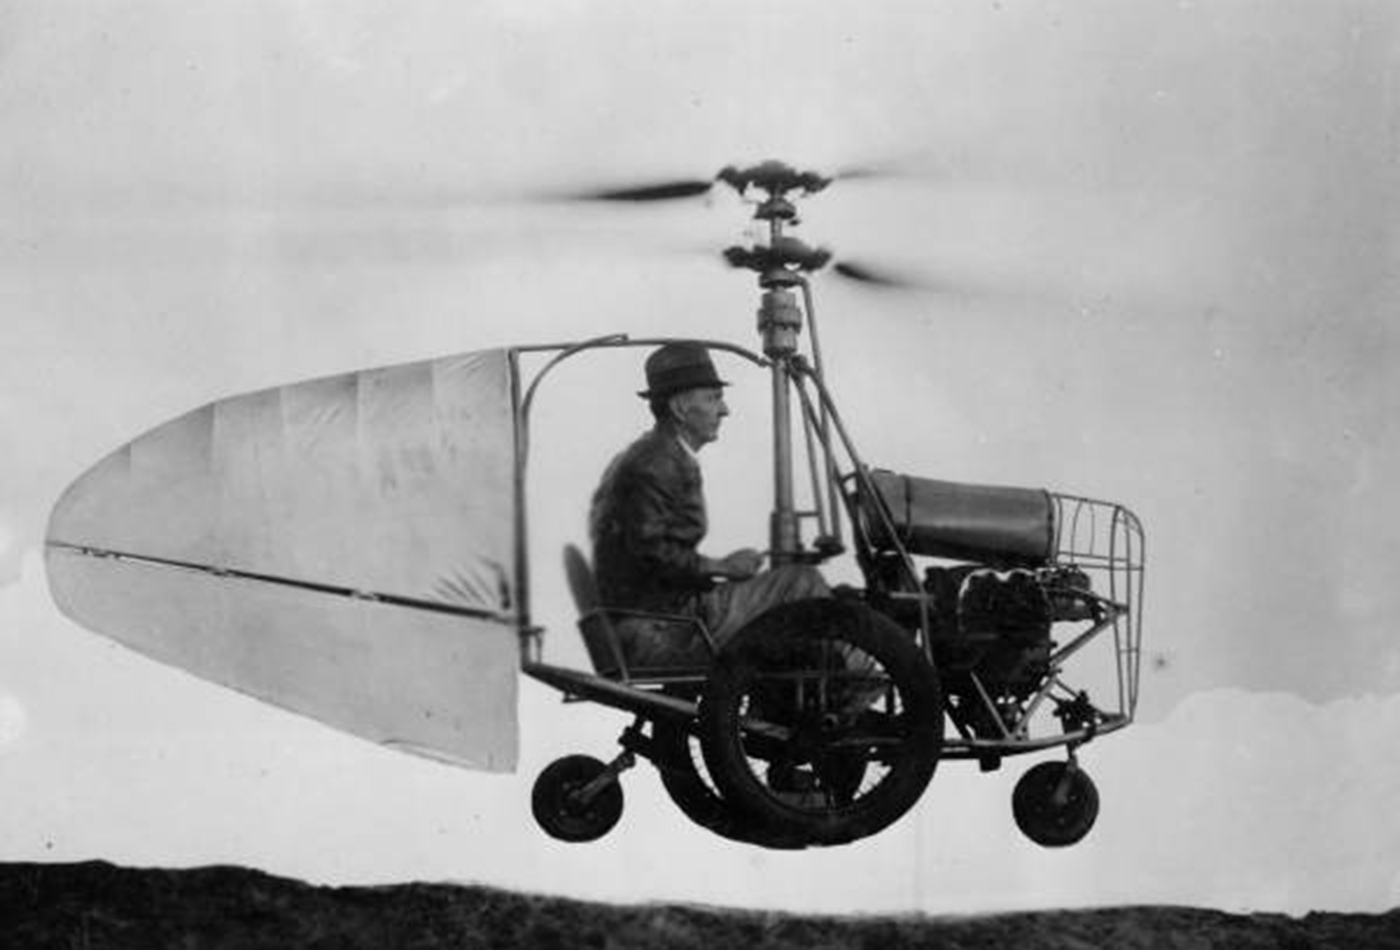 Built by Jess Dixon of Andalusia, Alabama. Can fly forward, backward, straight up, or hover in the air. Circa 1940.